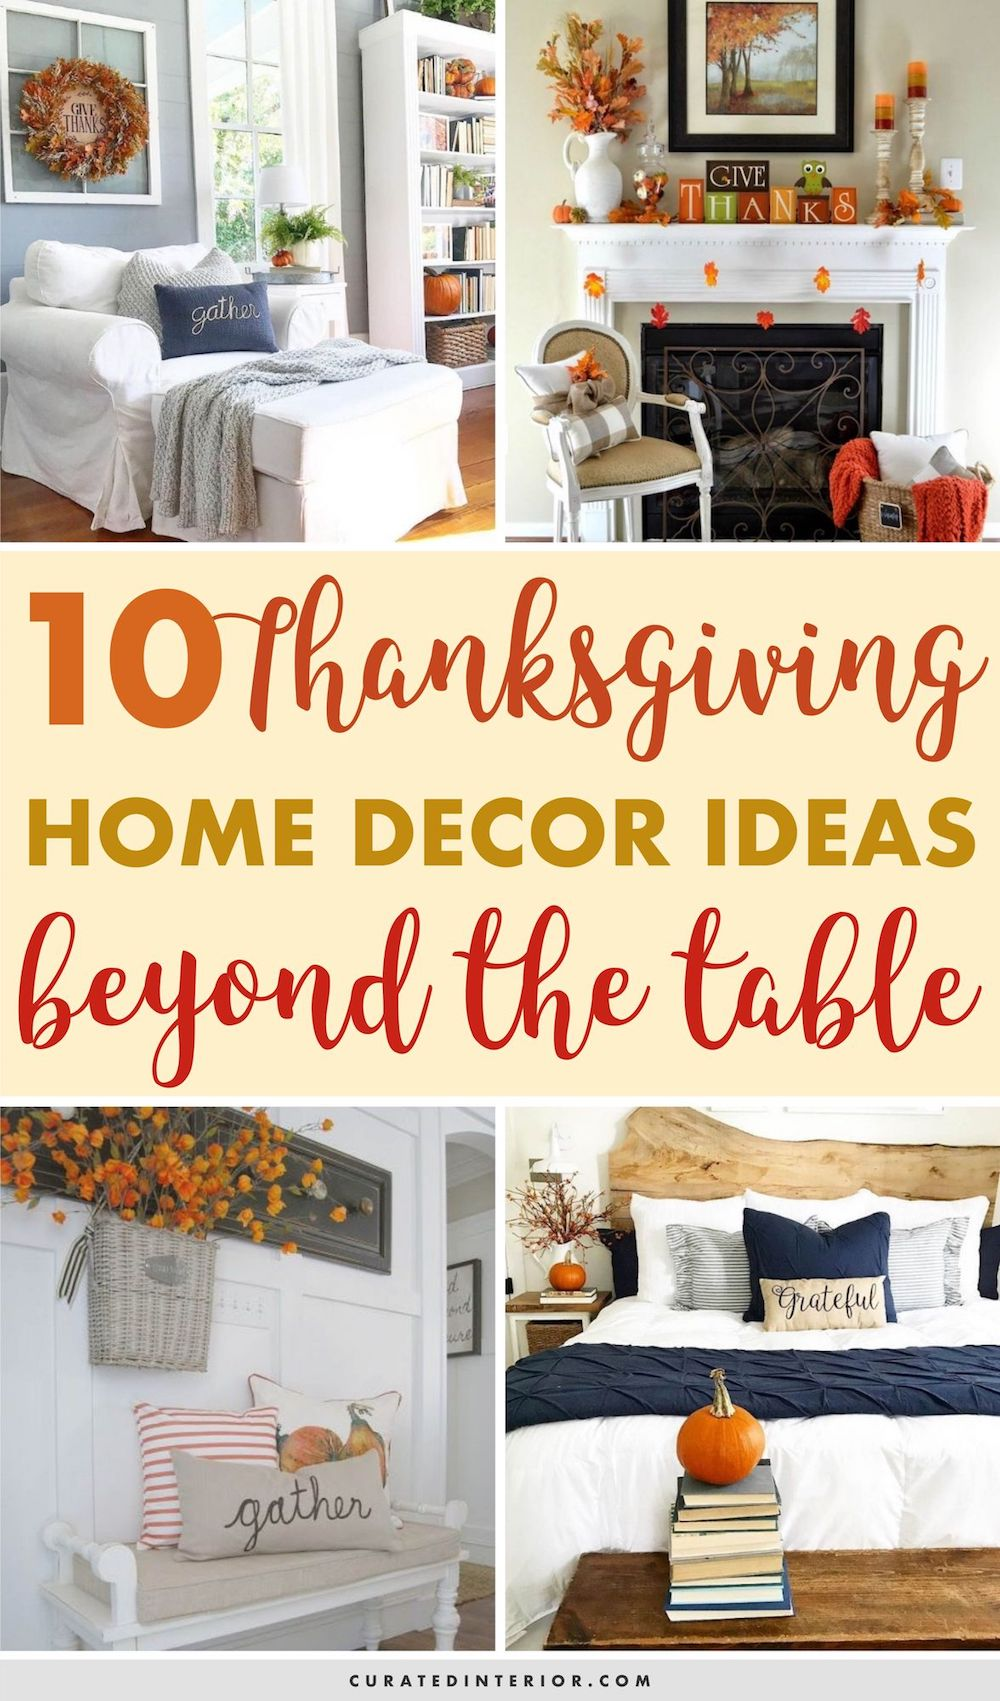 10 Thanksgiving Home Decor Ideas Beyond the Table #Thanksgiving #ThanksgivingDecor #ThanksgivingHomeDecor